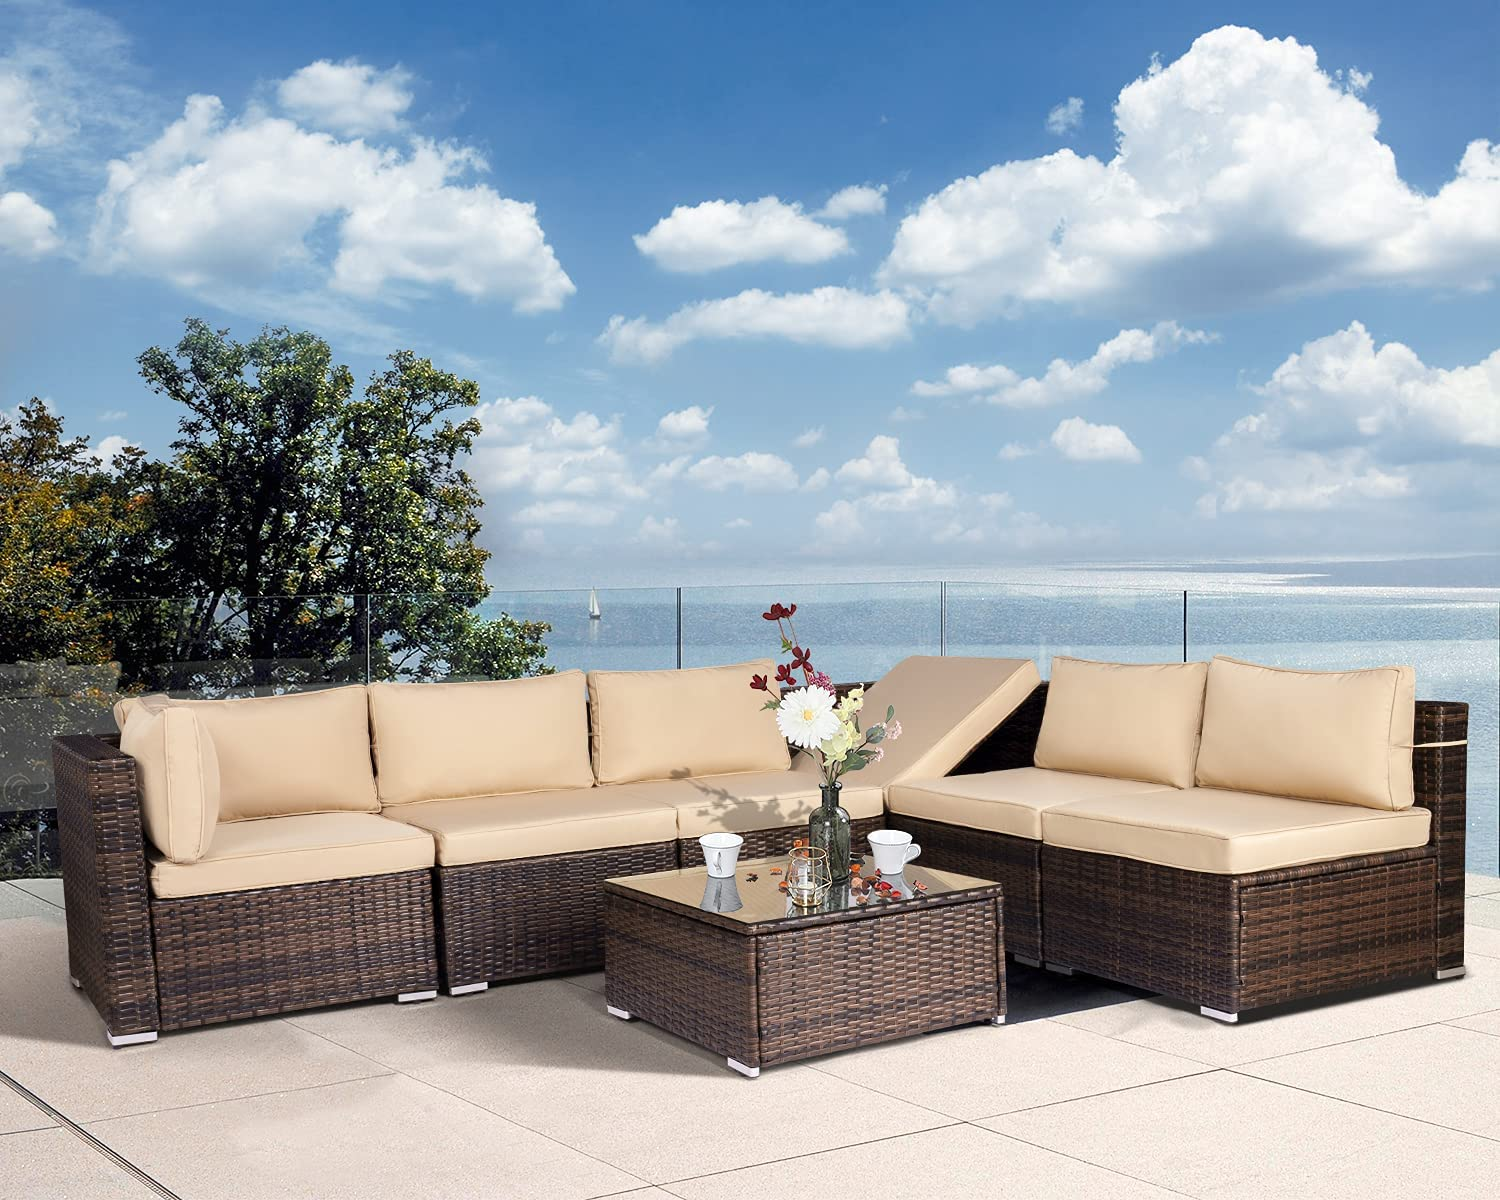 Aoxun Limited Special Price 7 Pieces High material Outdoor Sectional Sofa Wicker Set PE All-Weather